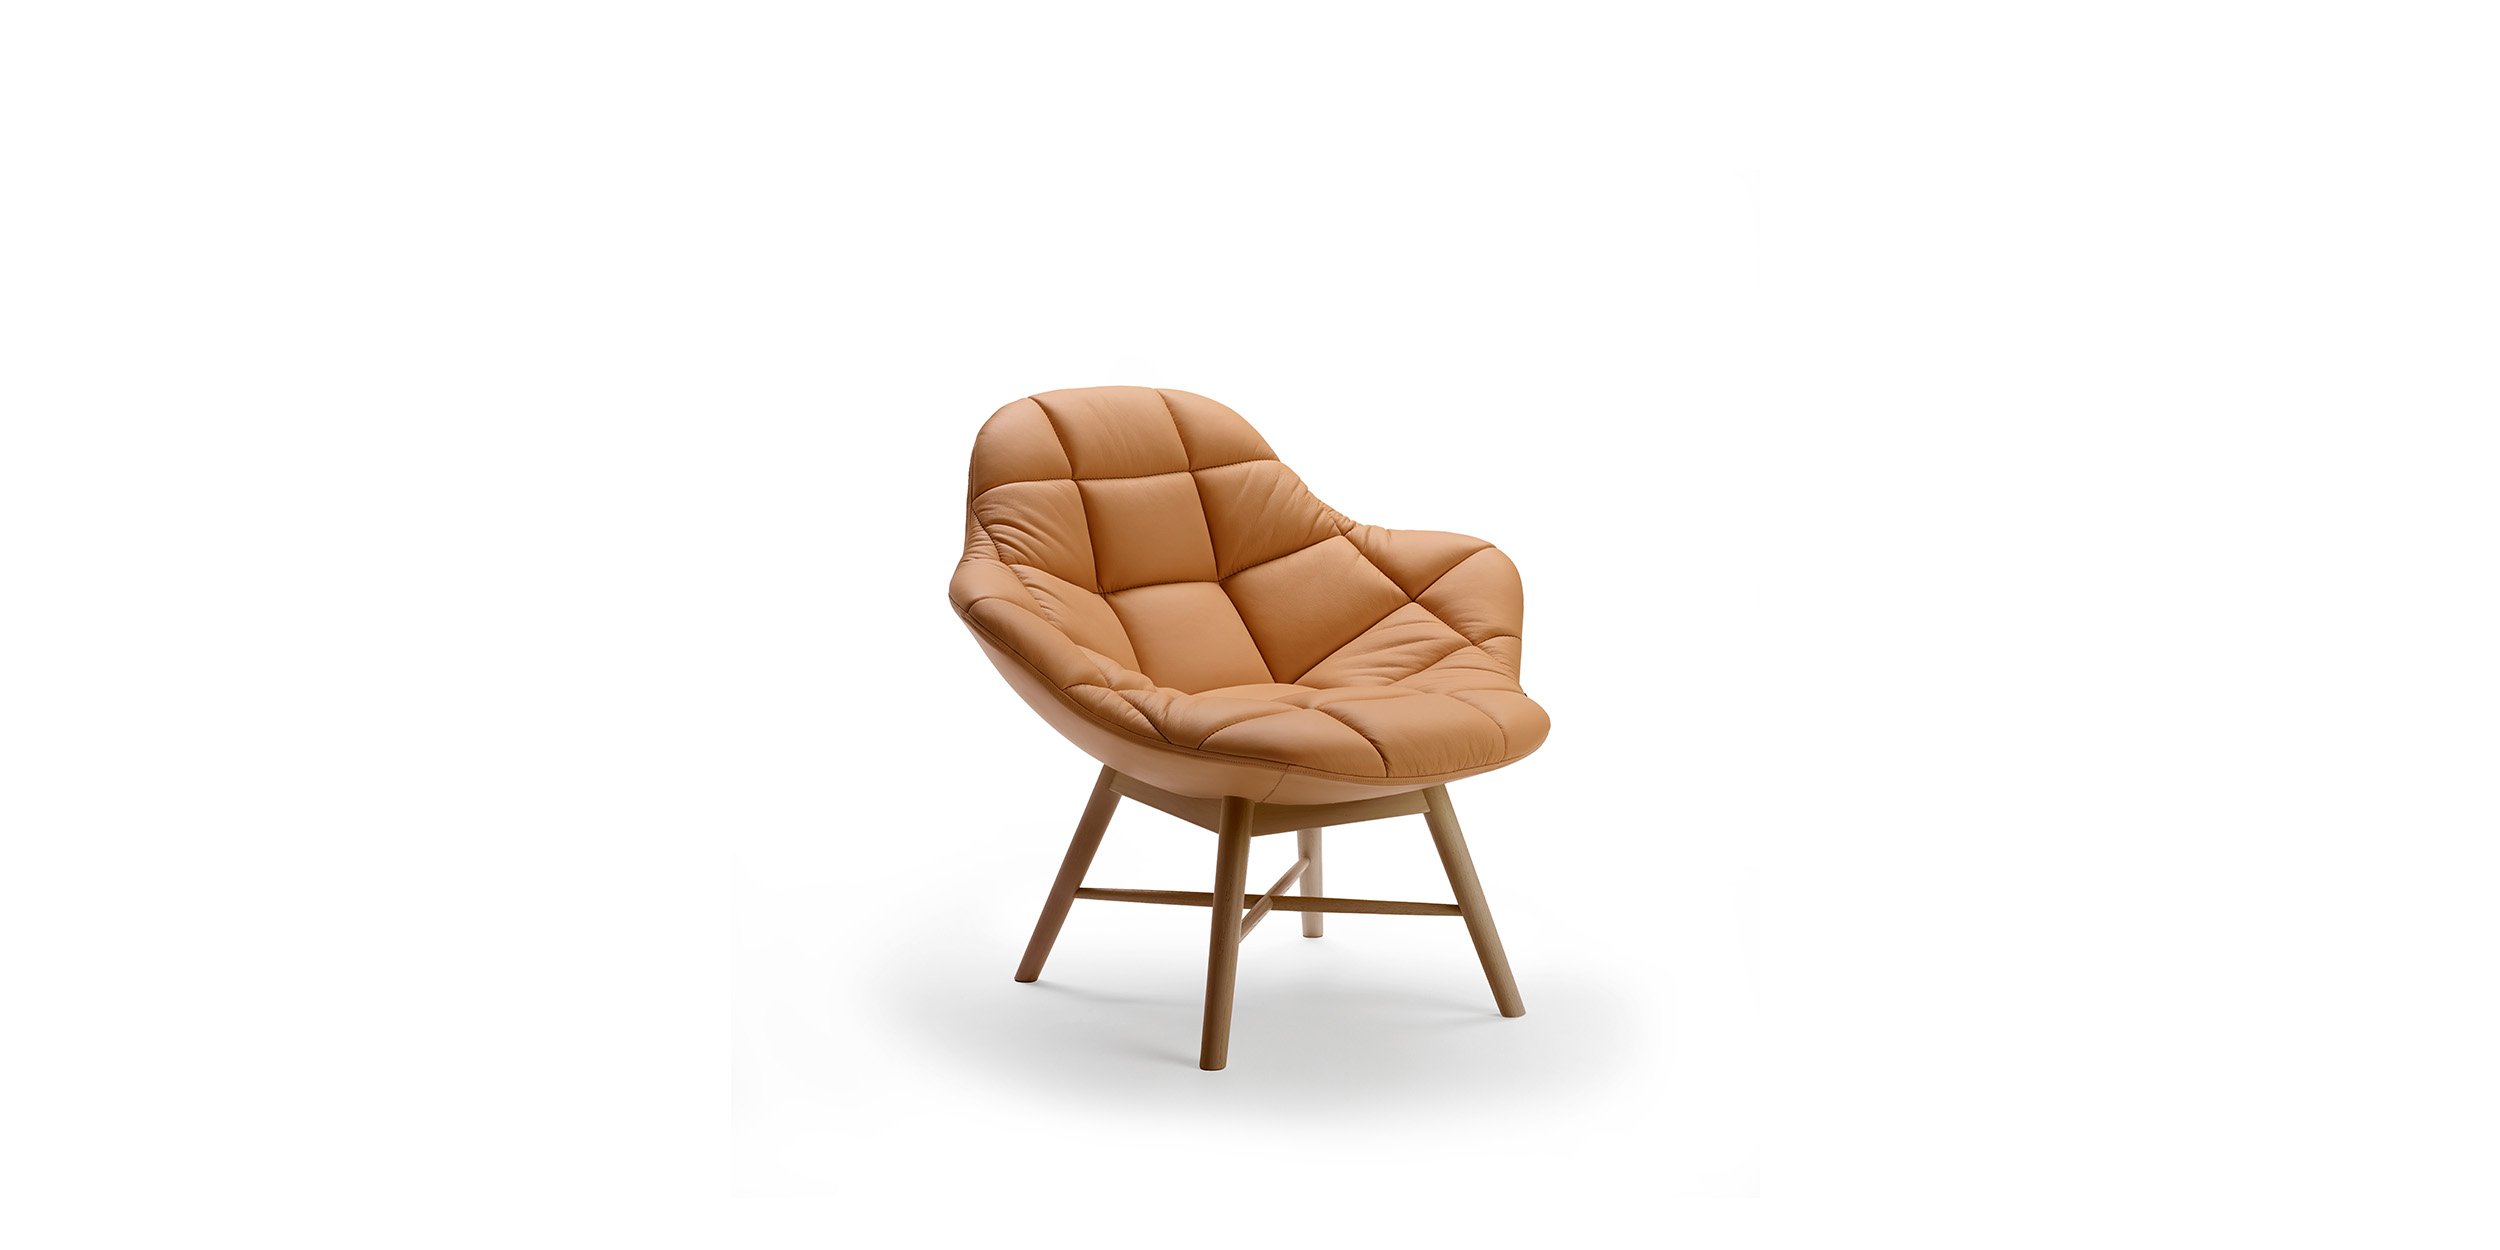 Palma Wood Easy Chair Lounge Seating By Khodi Feiz Offecct Offecct